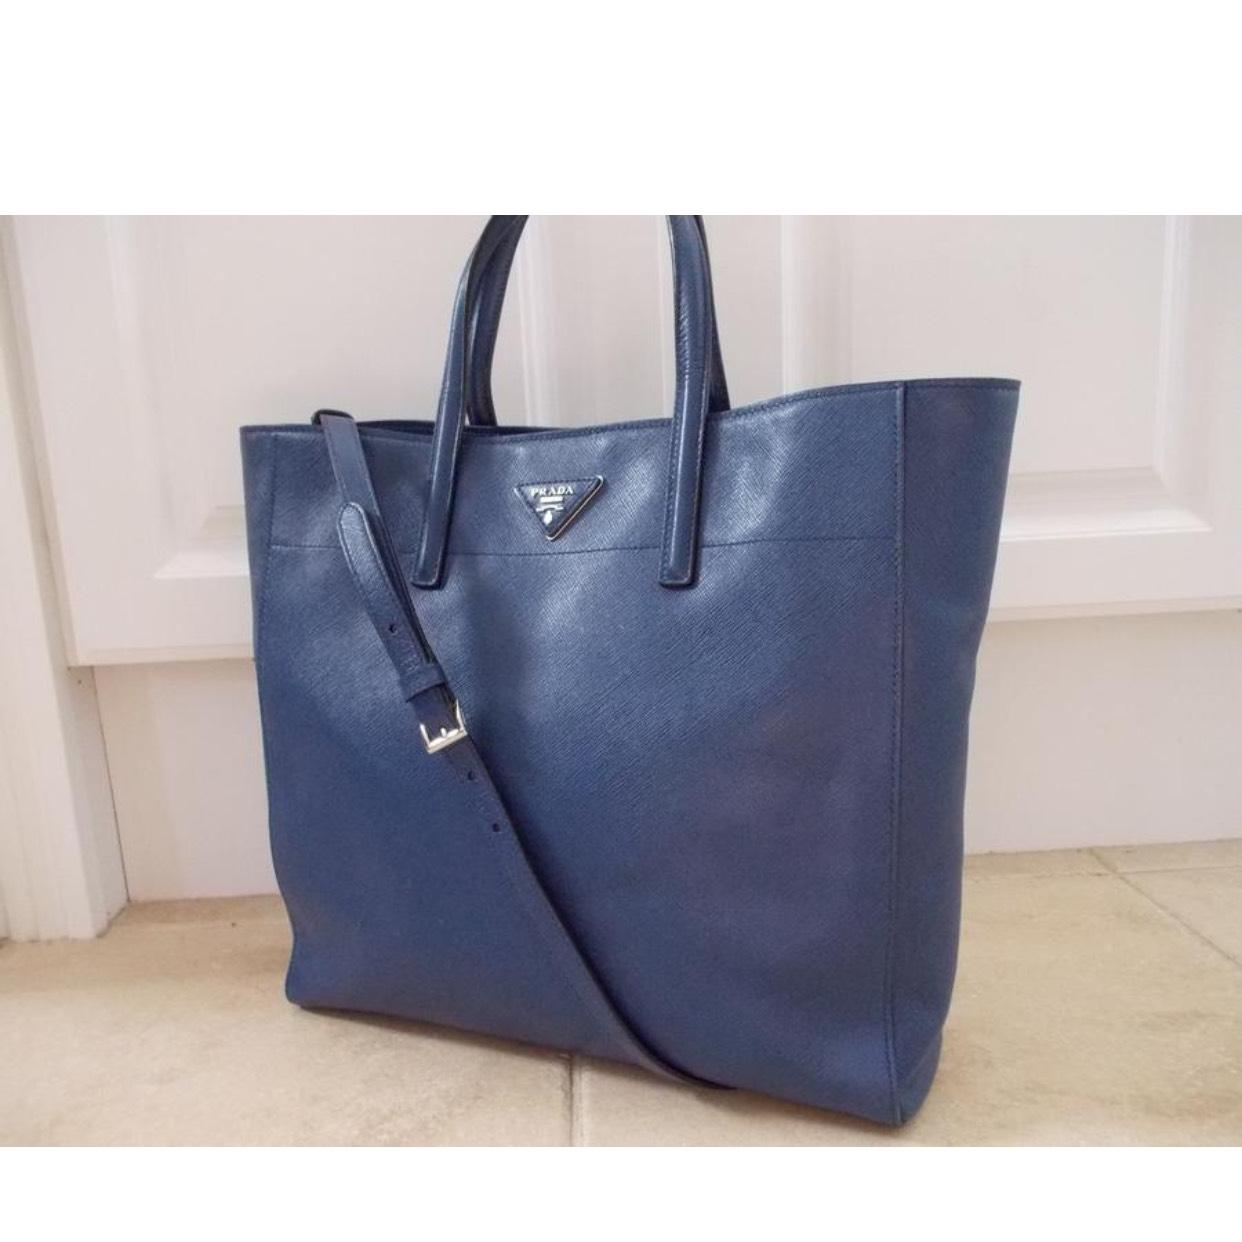 b0728f70f3b7 ... canada prada tote with straps blue saffiano leather cross body bag  tradesy b180e 6cbba